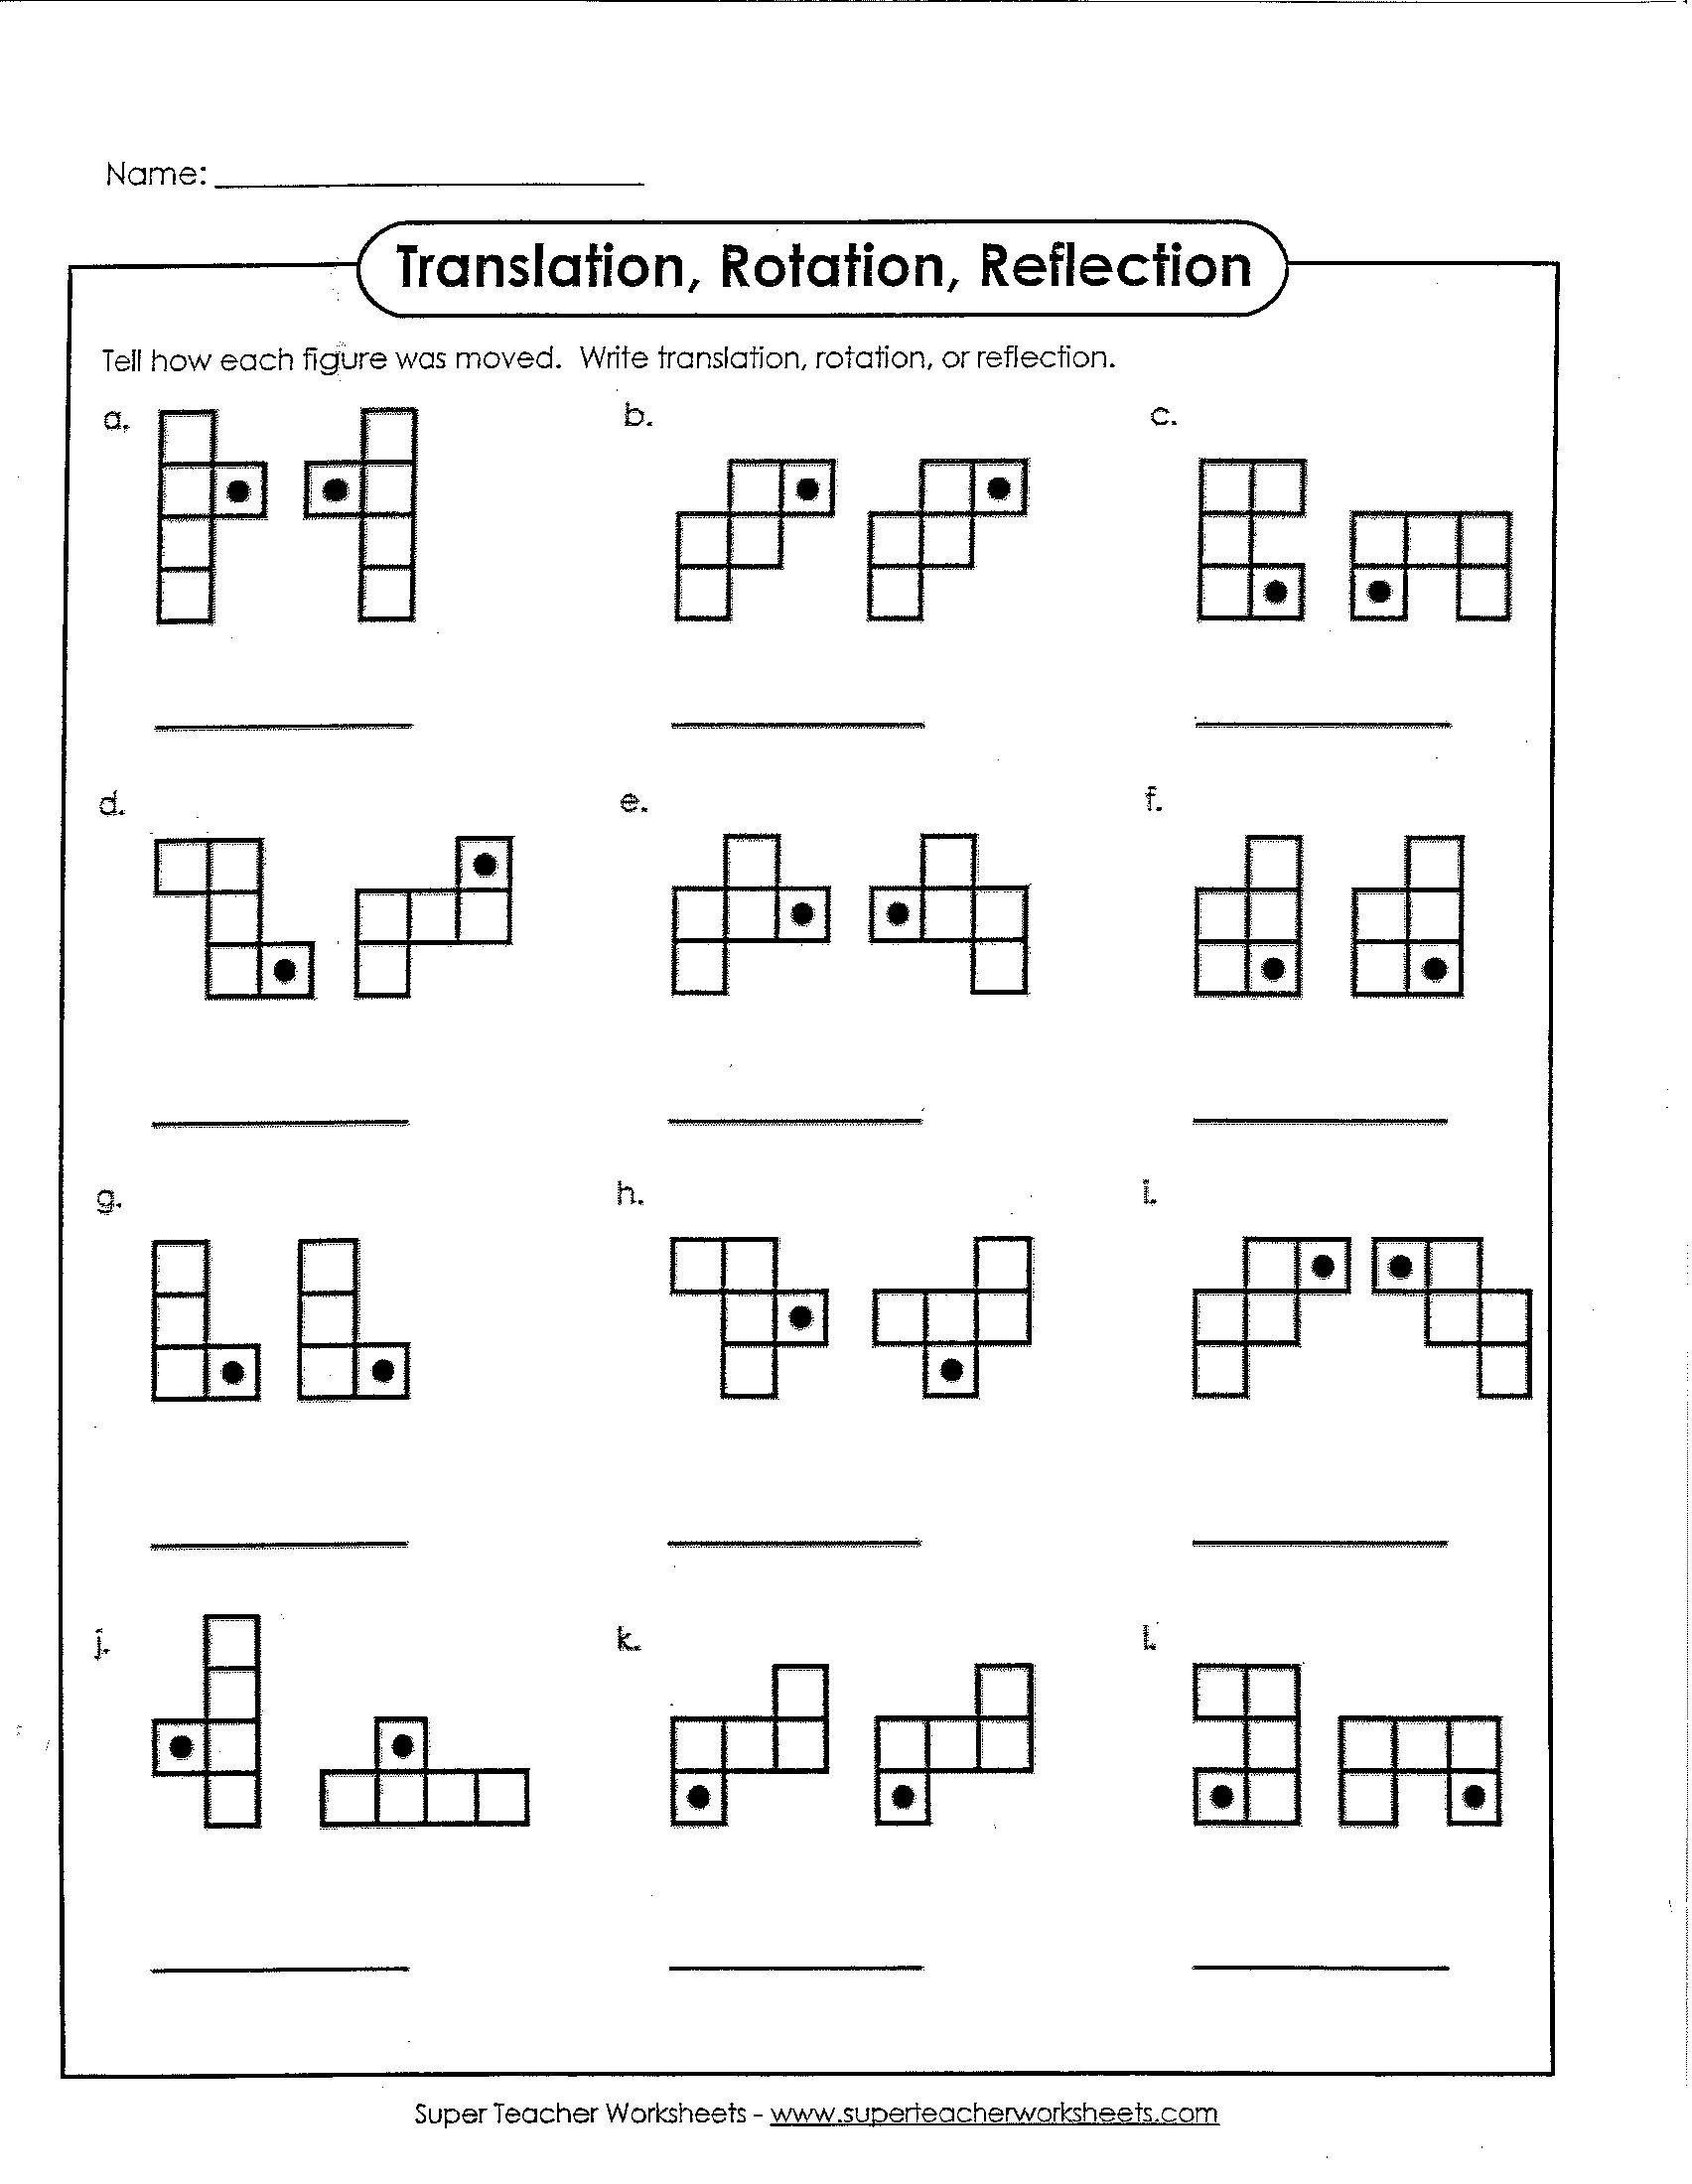 Translation Math Worksheets Pin On 1st Grade Worksheets & Free Printables